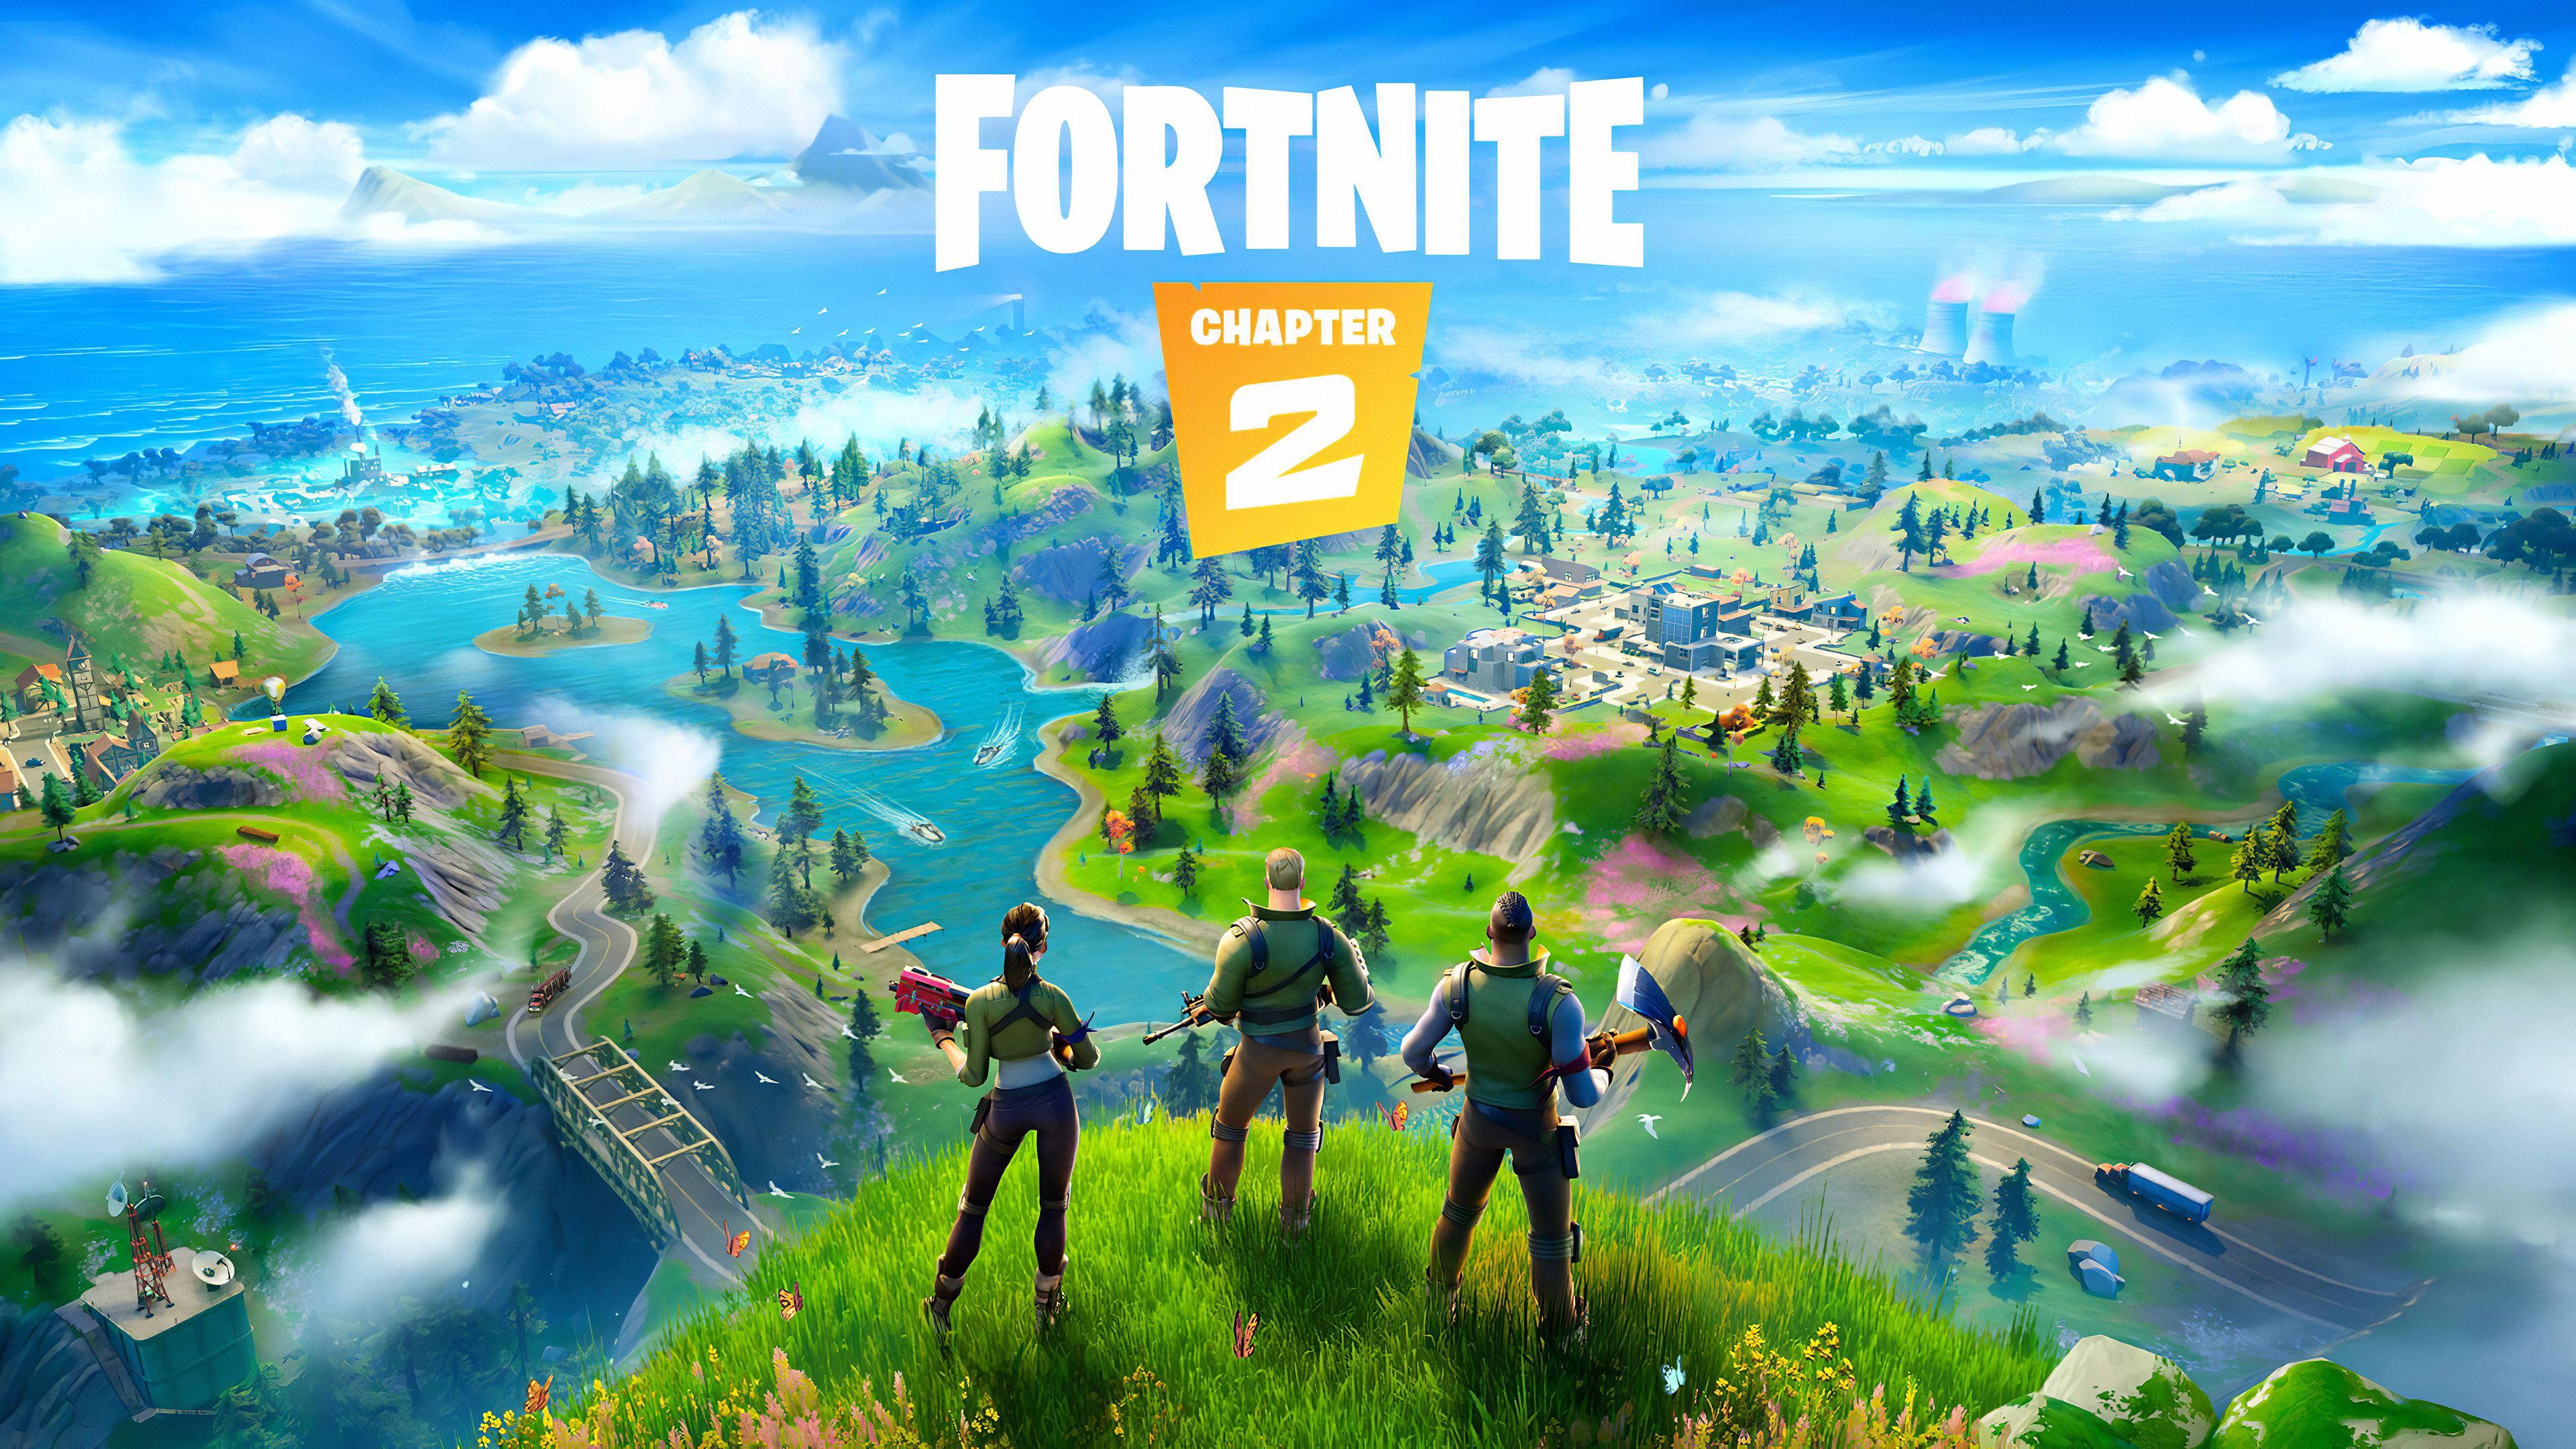 Wallpaper 4k Fortnite Chapter 2 2019 2019 Games Wallpapers 4k